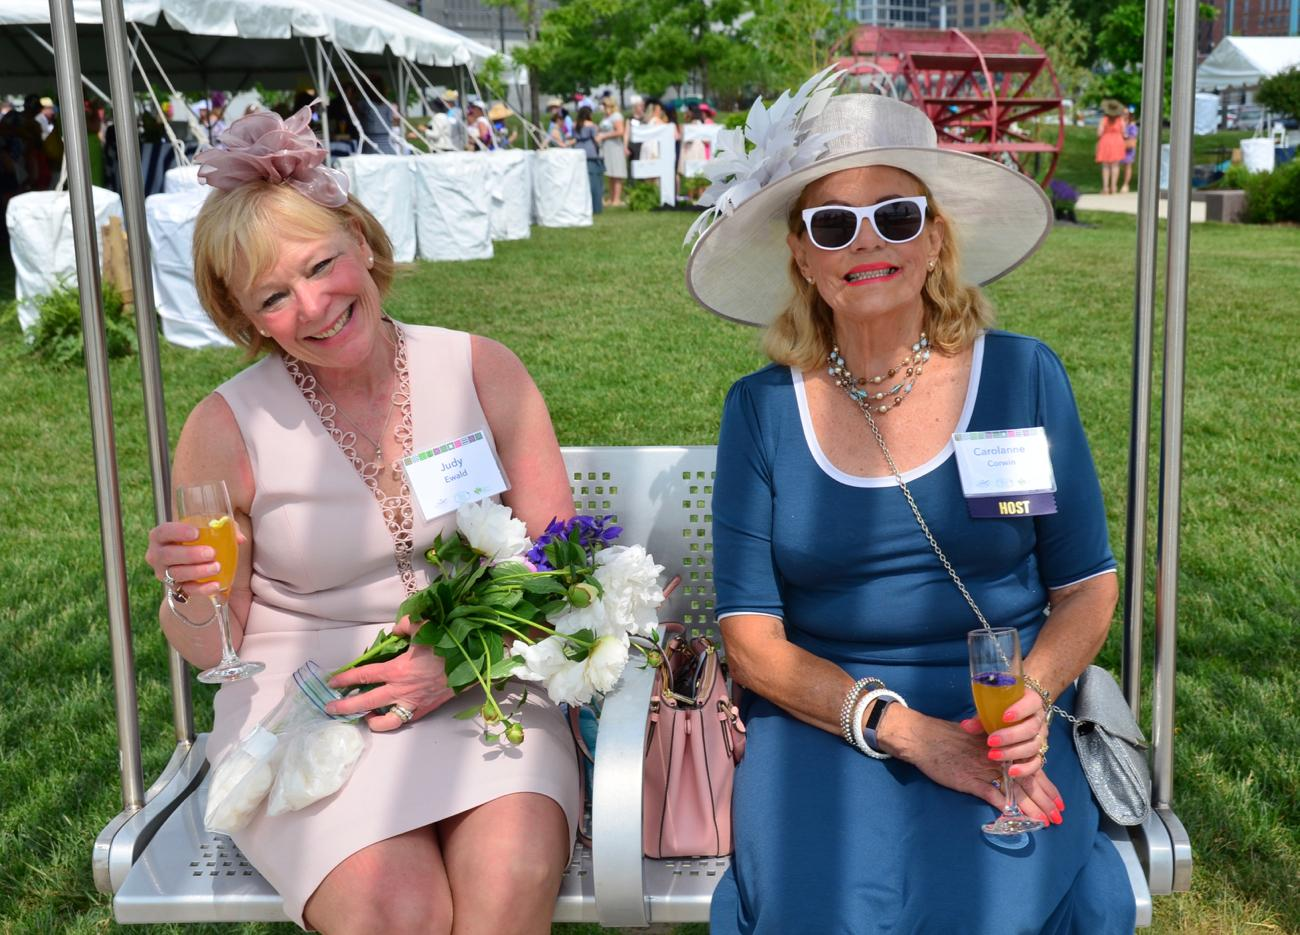 Judy Ewald and Carolanne Corwin / Image: Leah Zipperstein, Cincinnati Refined // Published: 5.18.18